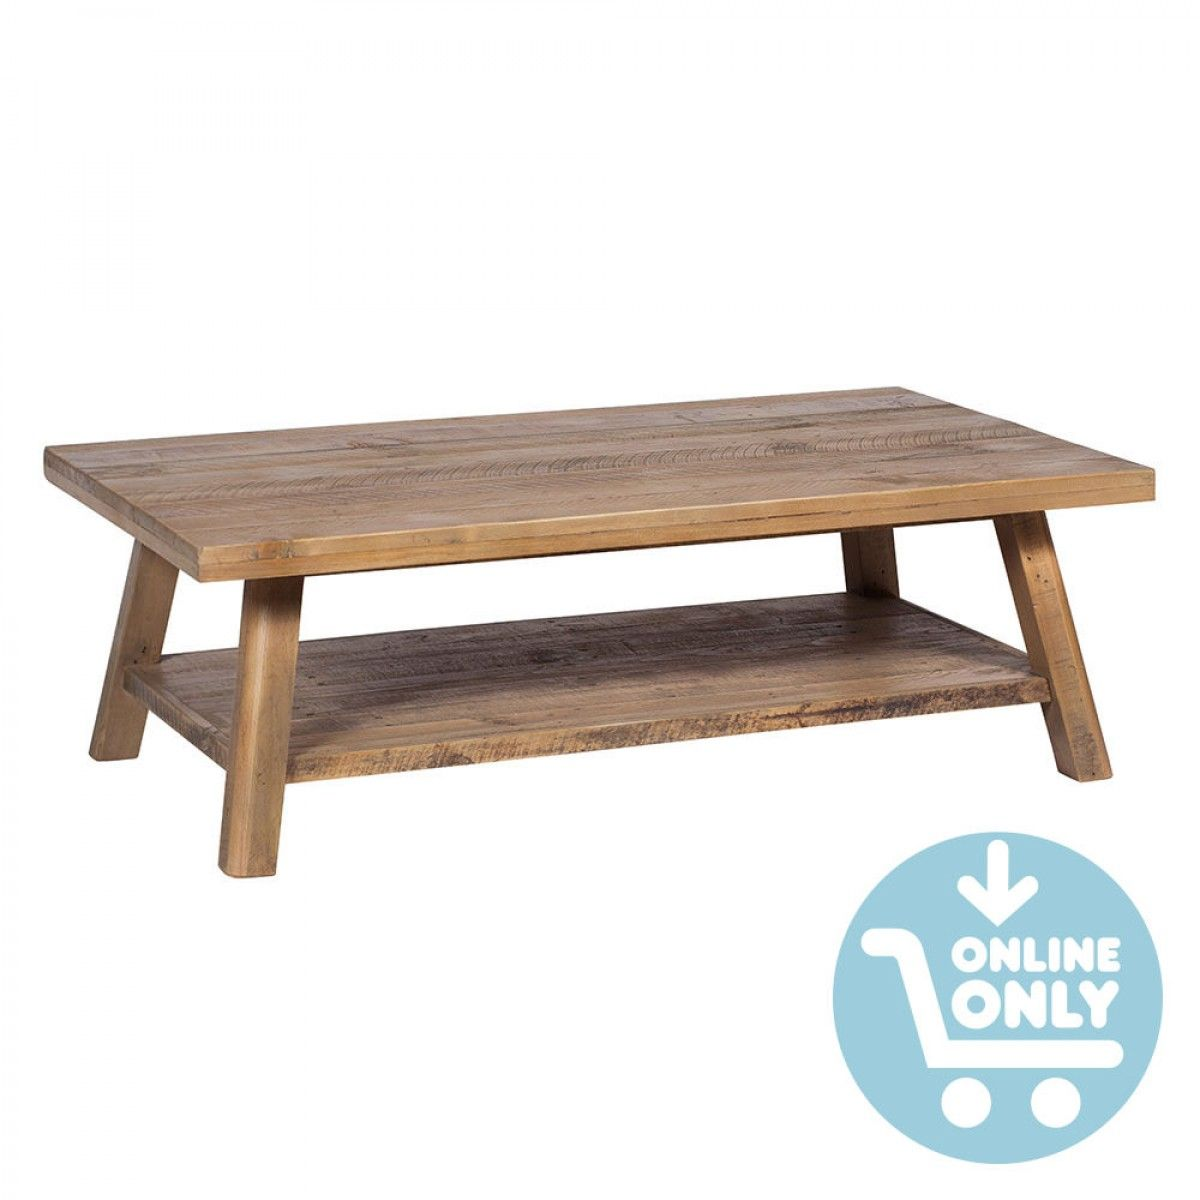 Early Settler Sofa Tables Refil Sofa